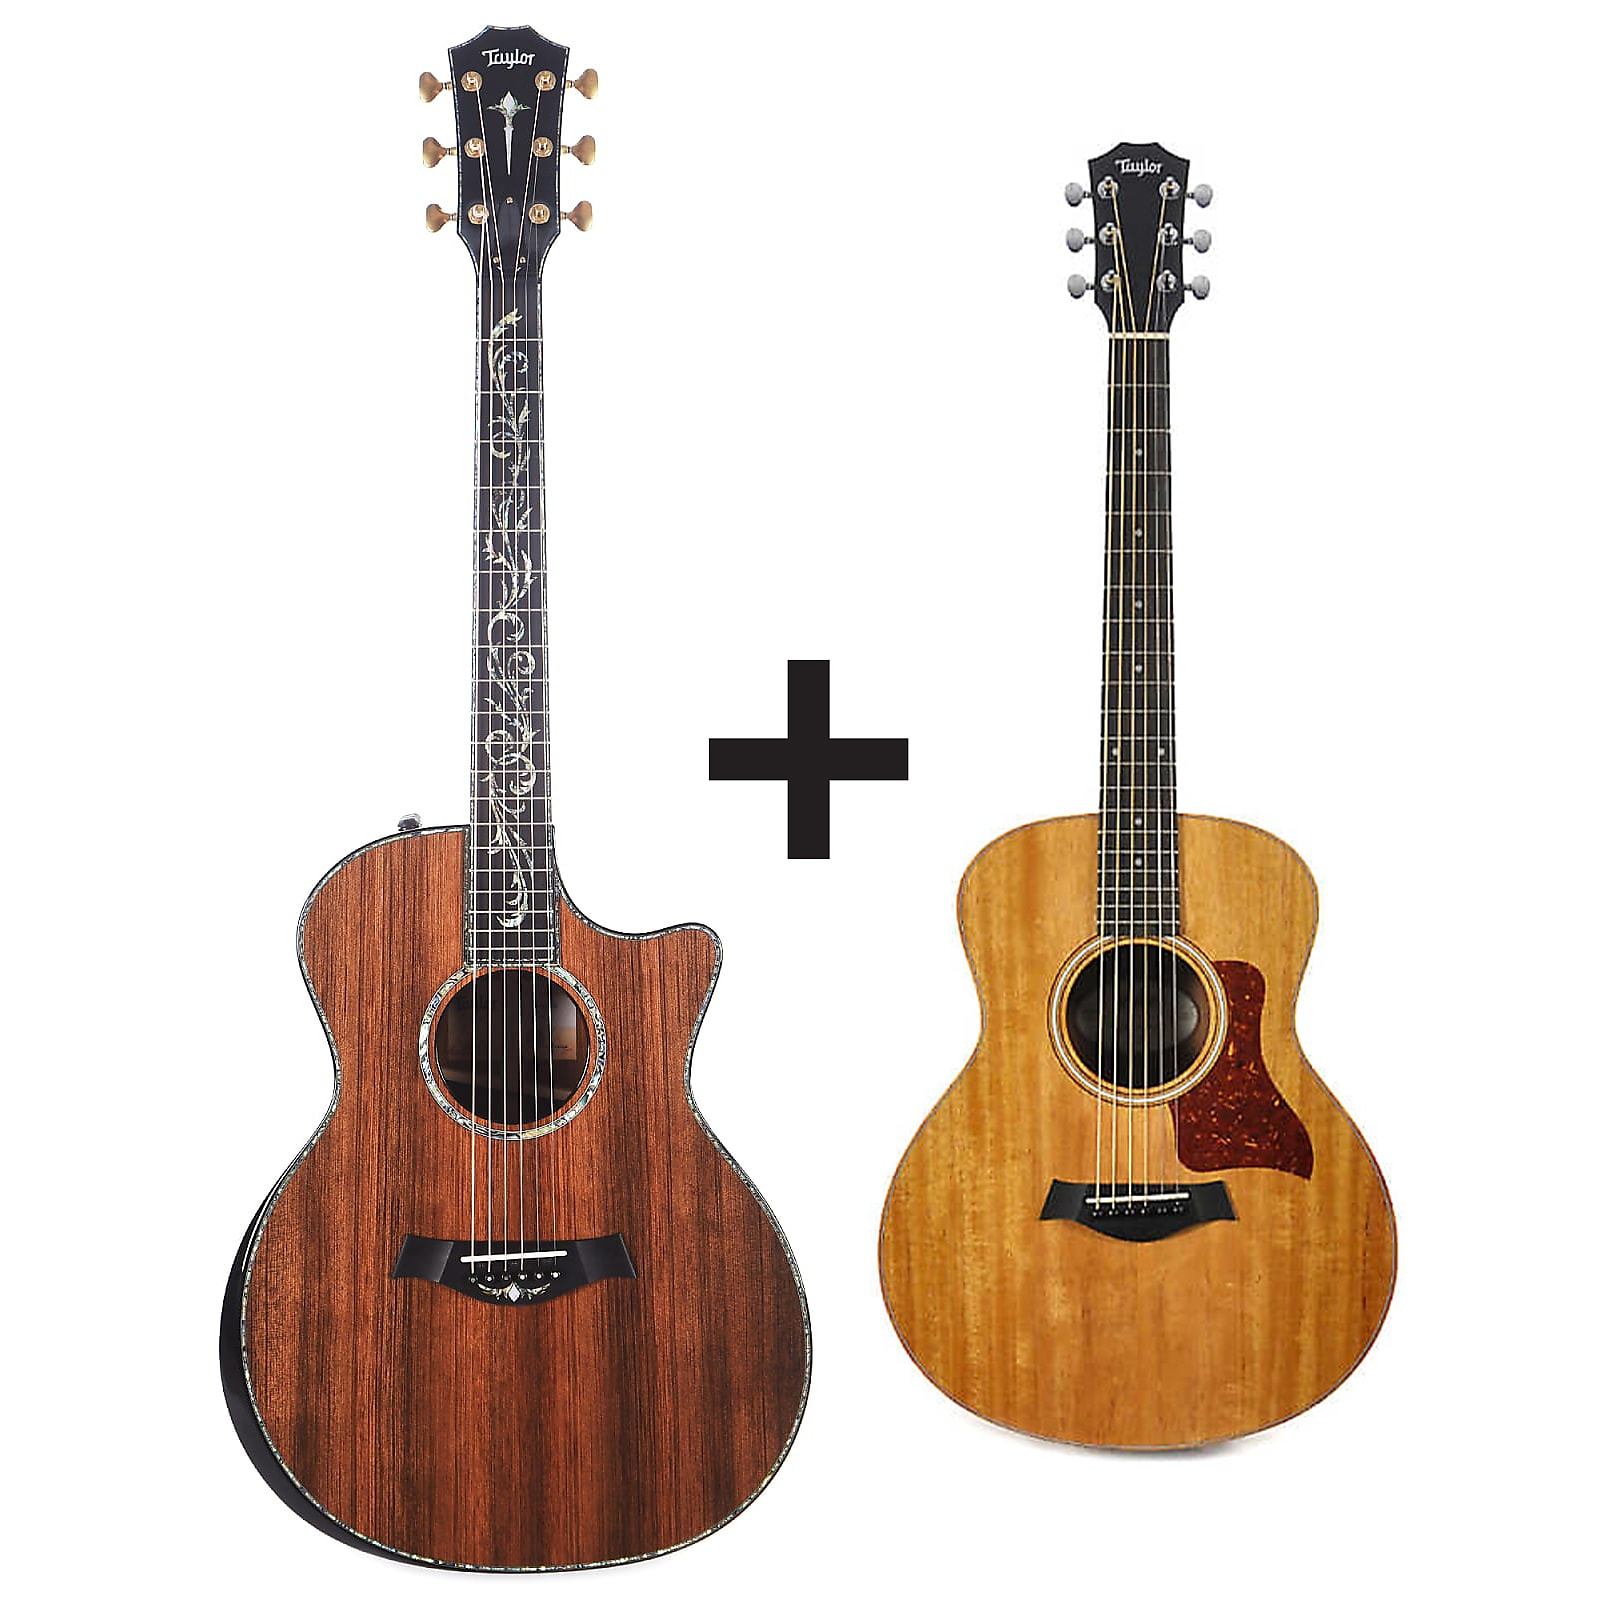 Taylor PS14ce Sinker Redwood/Cocobolo ES2 w/V-Class Bracing ADD Taylor GS Mini for $99